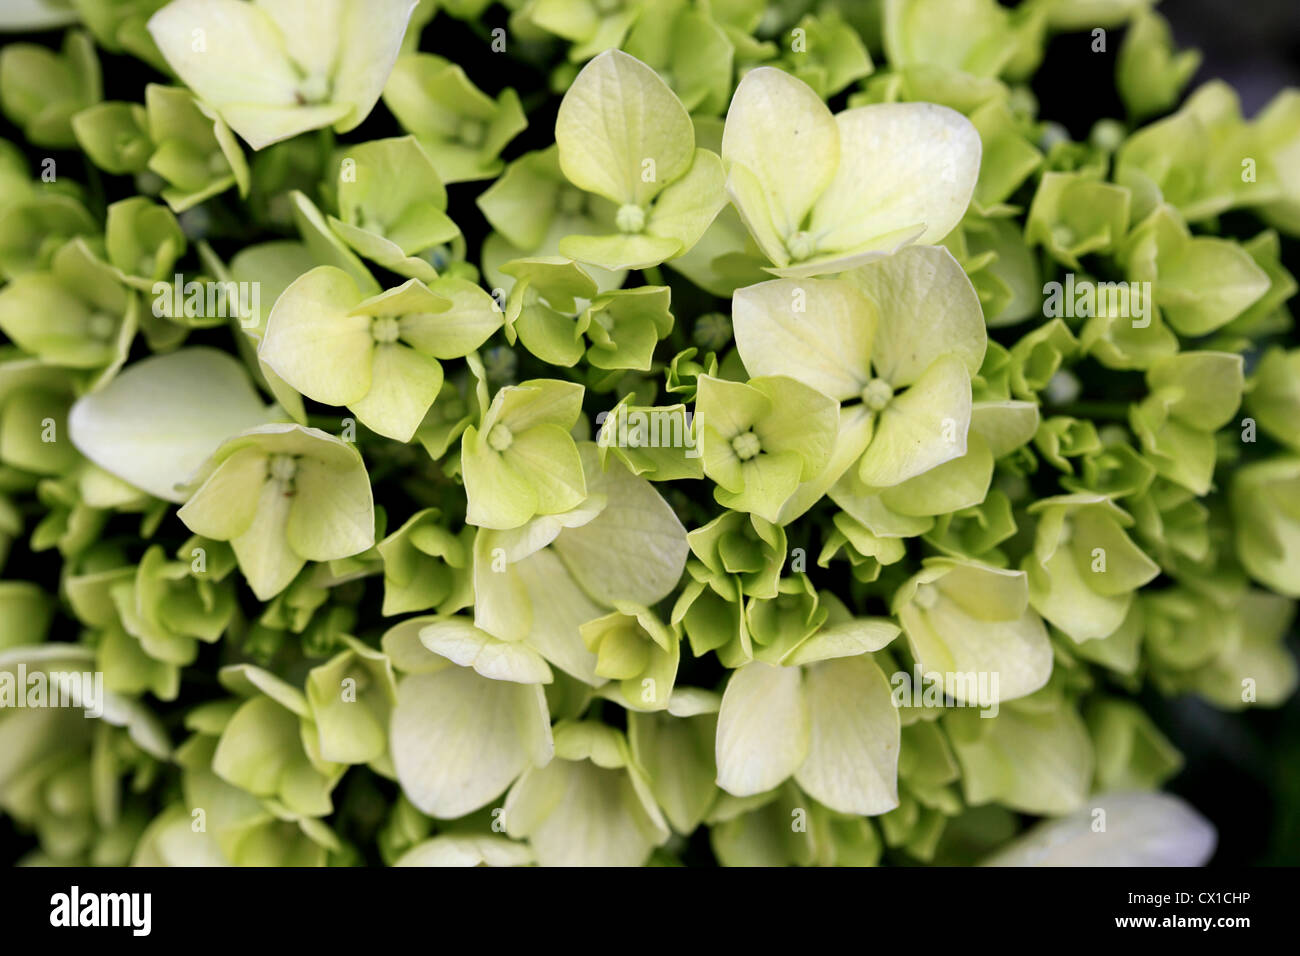 Closeup View Of Bunch Of White Tiny Flowers Stock Photo 50433650